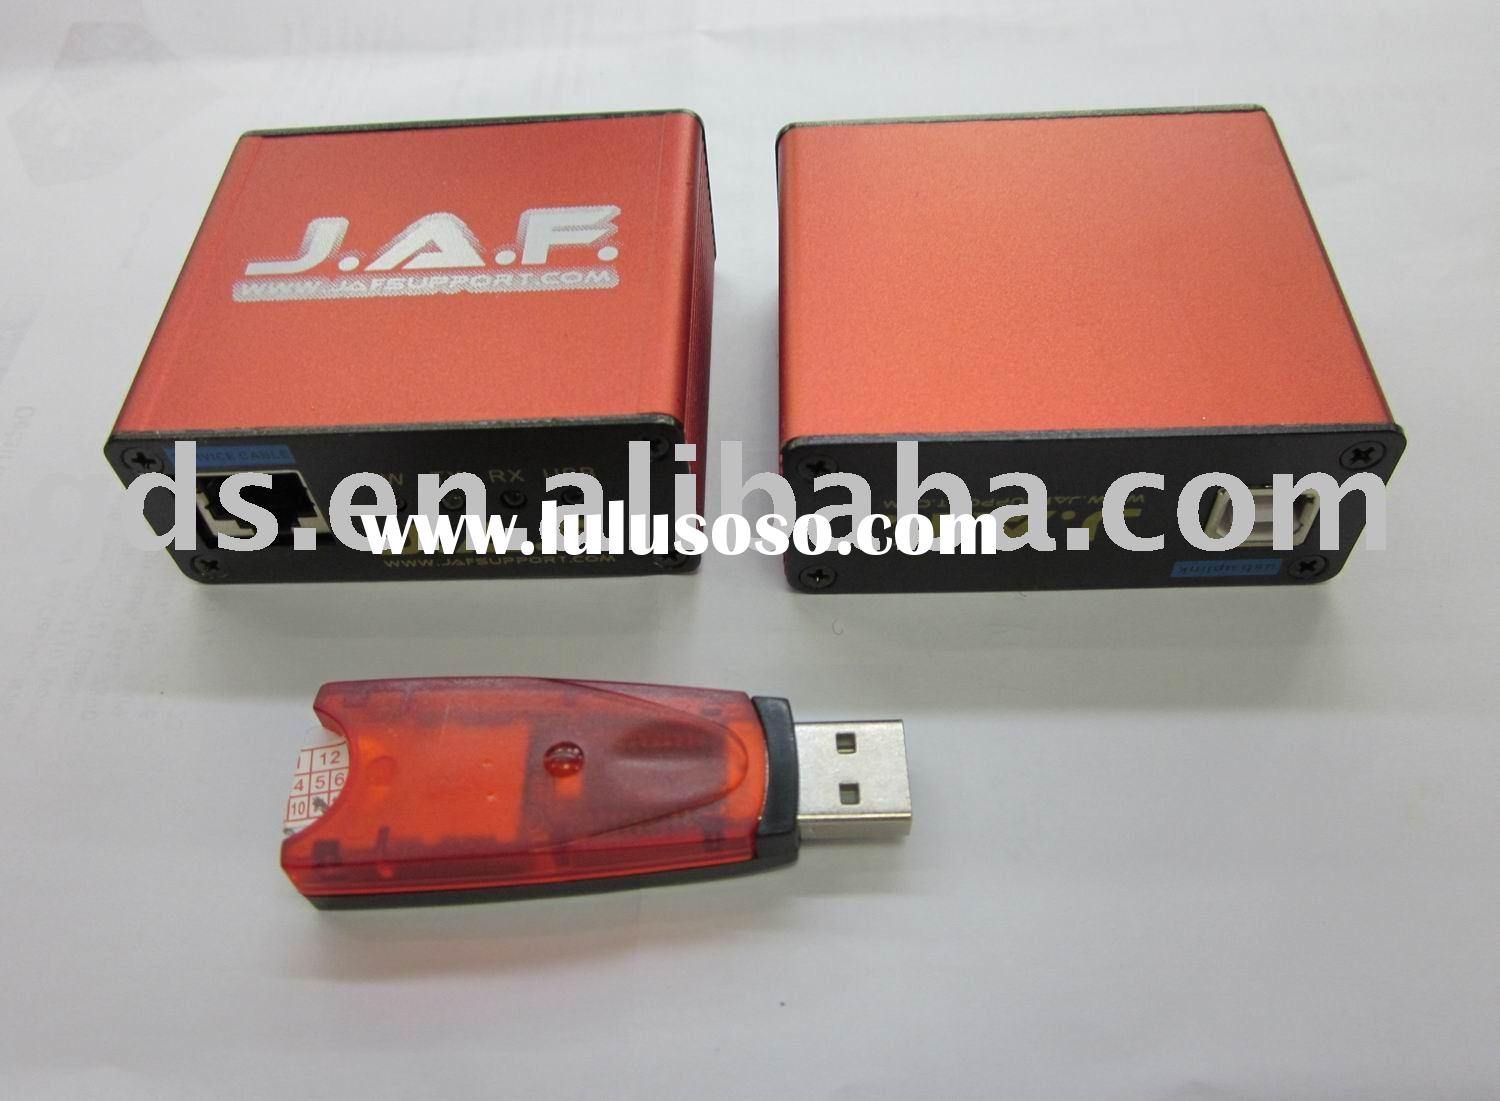 JAF BOX with P-KEY full activation